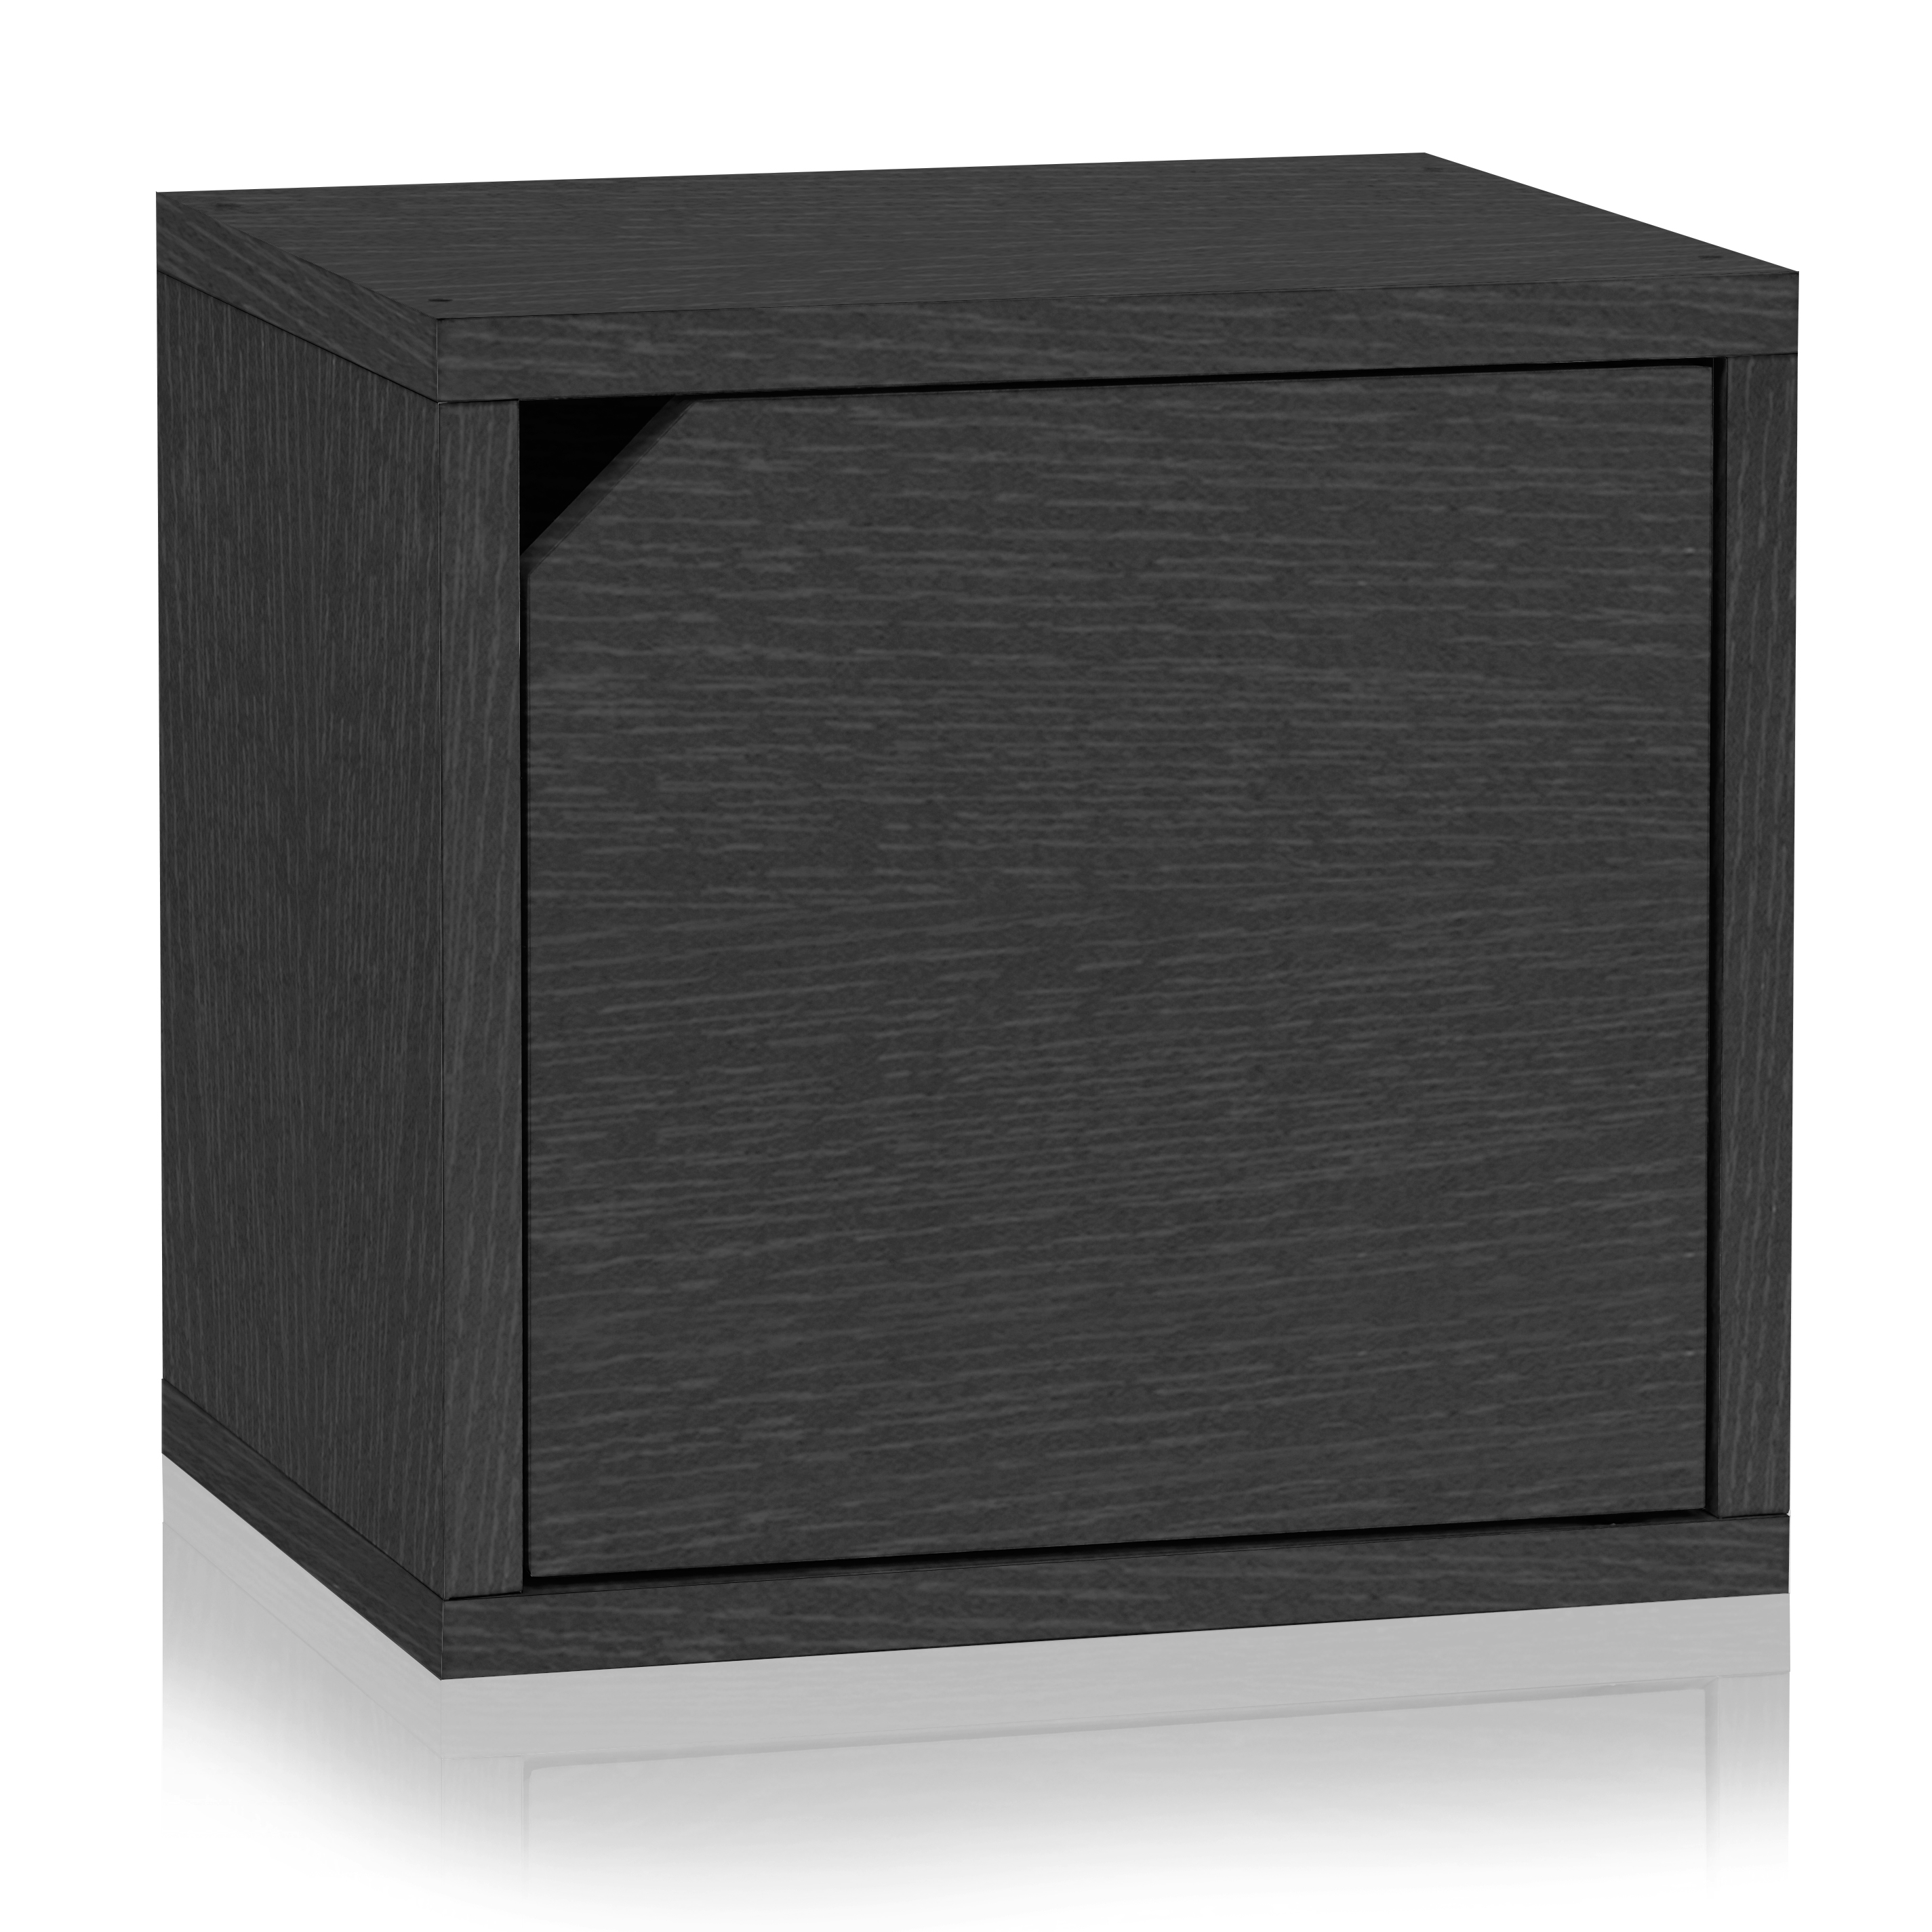 Eco Stackable Connect Storage Cube with Door, Black Wood Grain - Tool Free Assembly - LIFETIME WARRANTY